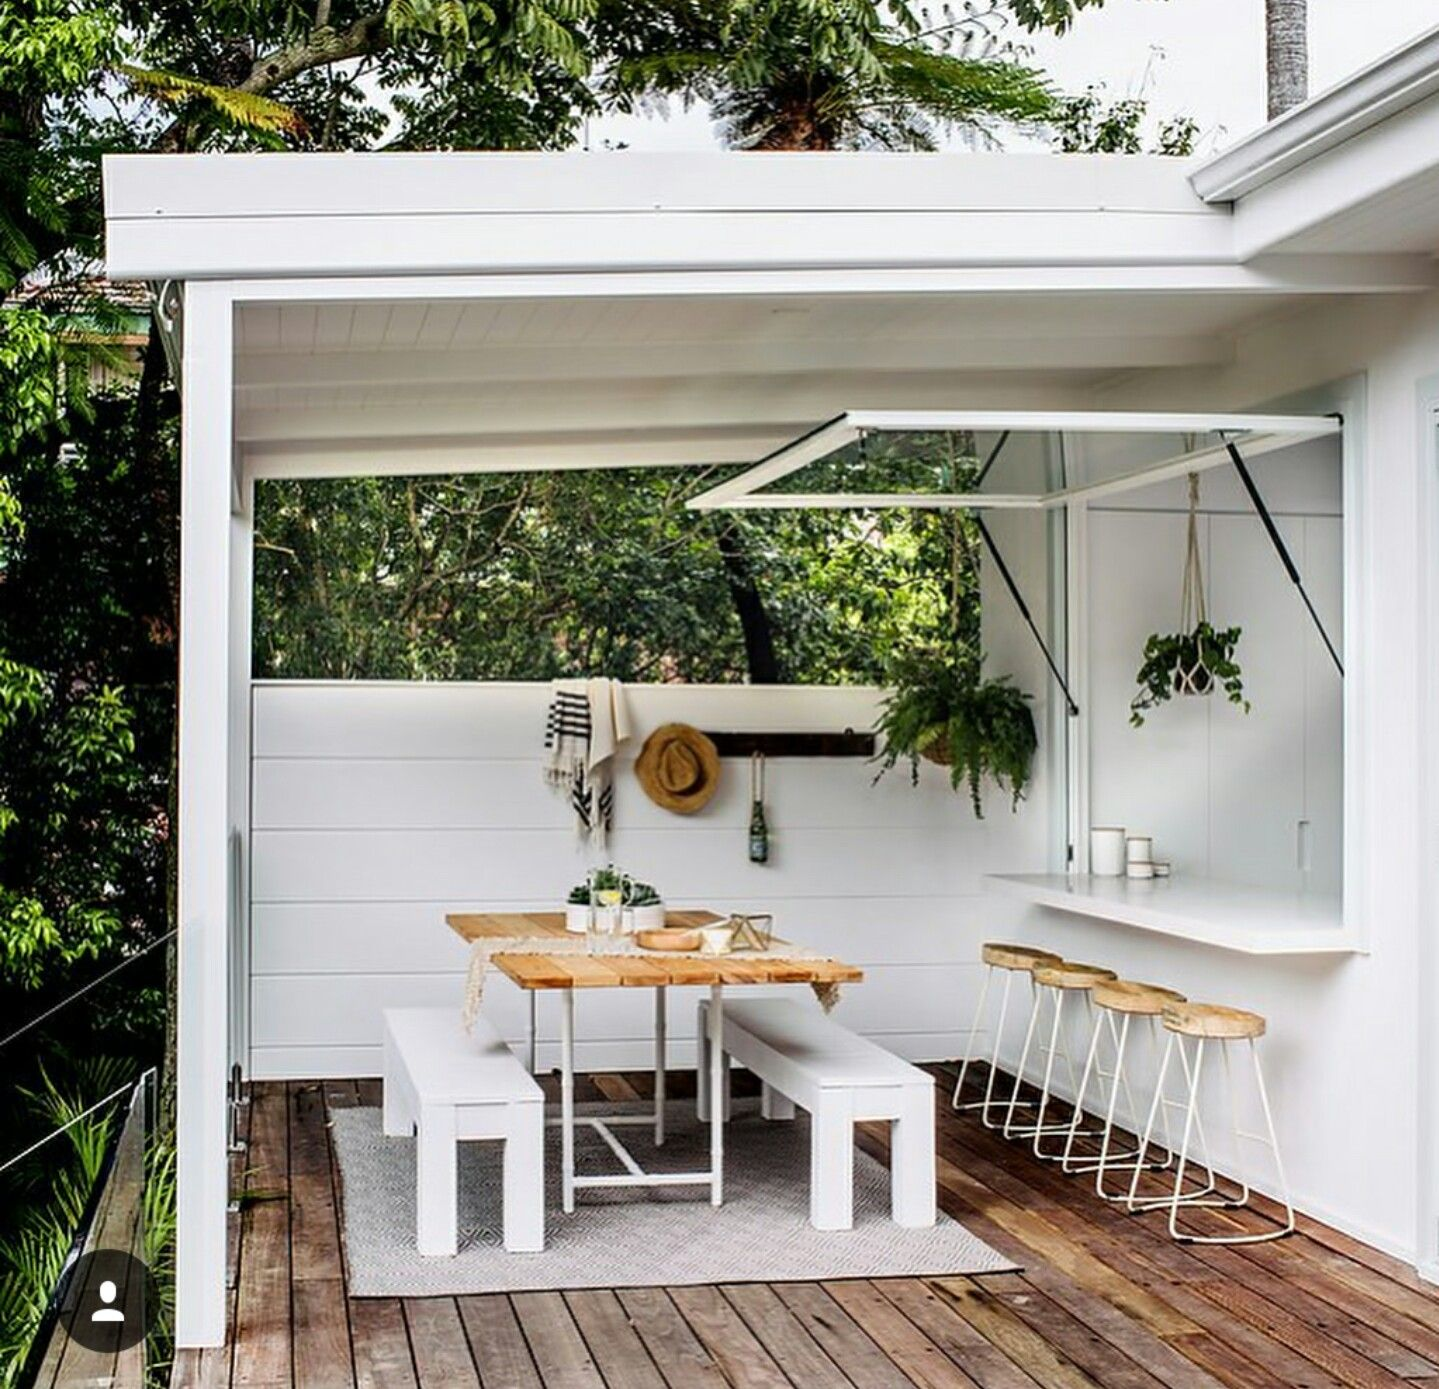 Pin By Rosa Park On Living In Style In 2019 Outdoor Kitchen Design